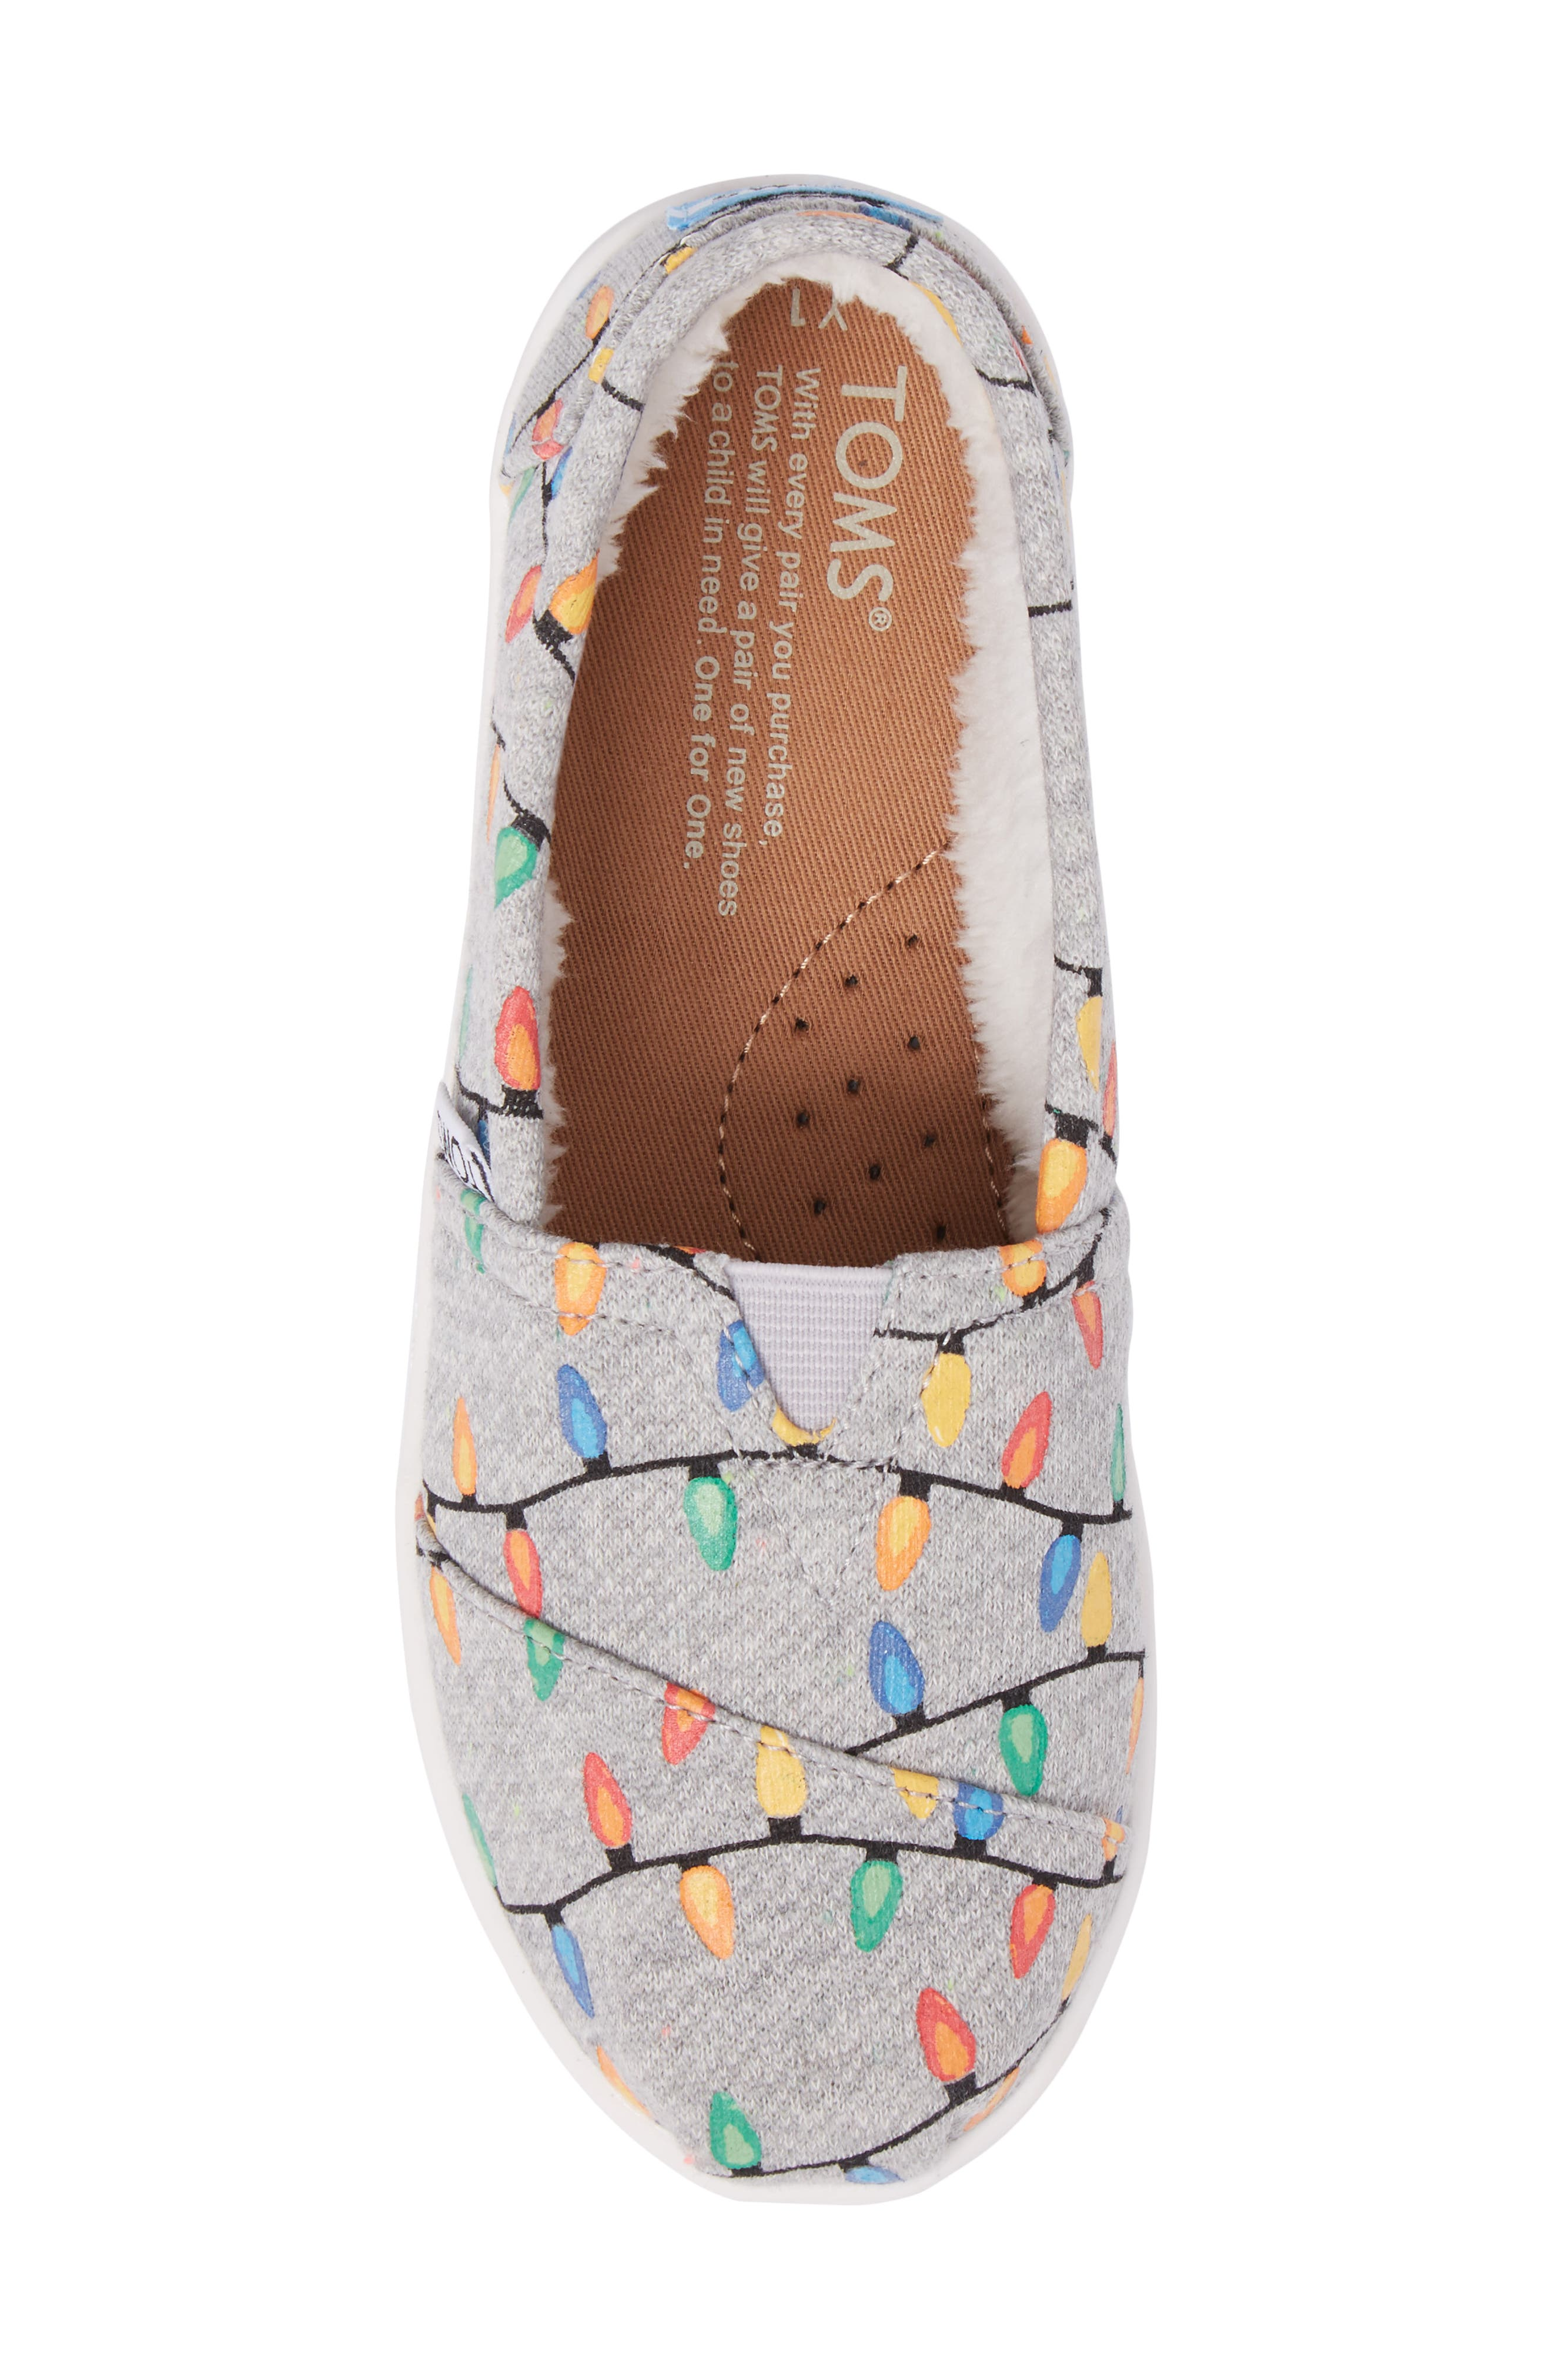 Classic Glow in the Dark Christmas Lights Slip-On,                             Alternate thumbnail 5, color,                             250